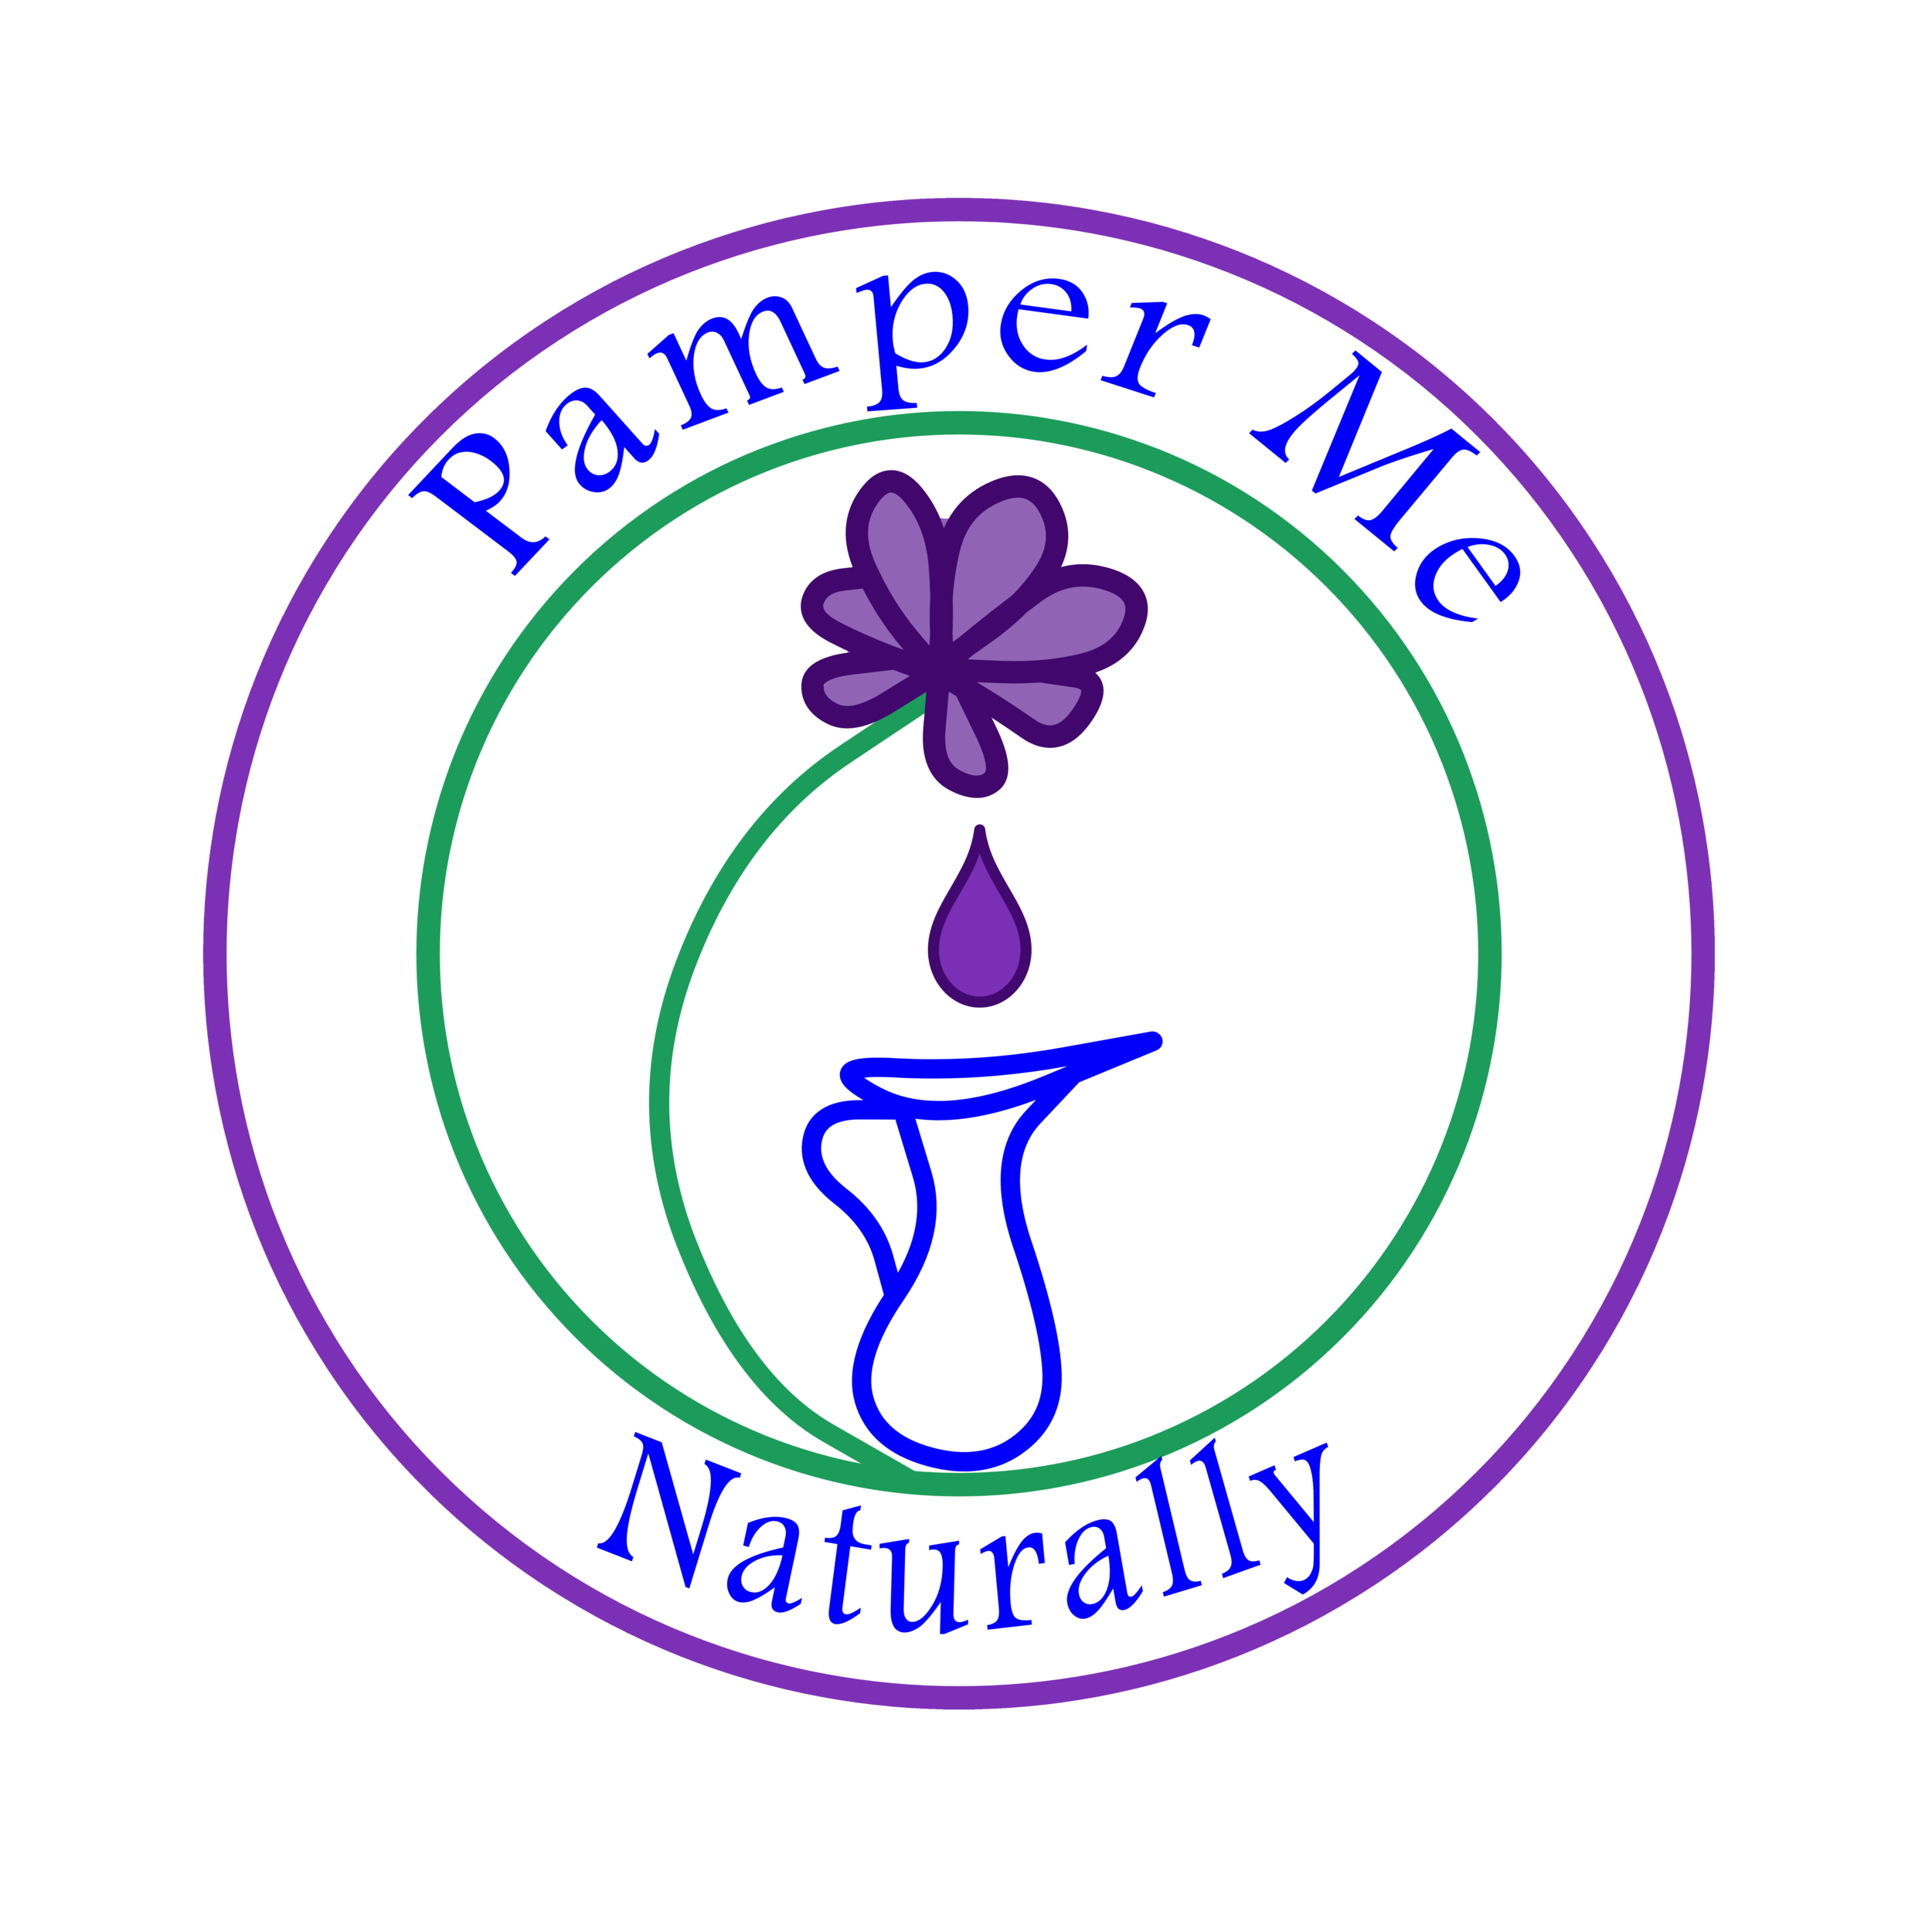 Pamper Me Naturally - Custom Products - Custom Labeling for Shower Favors, Party Gifts, and More…Our Aromatherapist can Create your Prefect Bar of Soap.Minimum Custom Order 40 Bars of the Same Custom Scent.For Details & Pricing Contact Us here.Custom Labels By AderGraphics.com